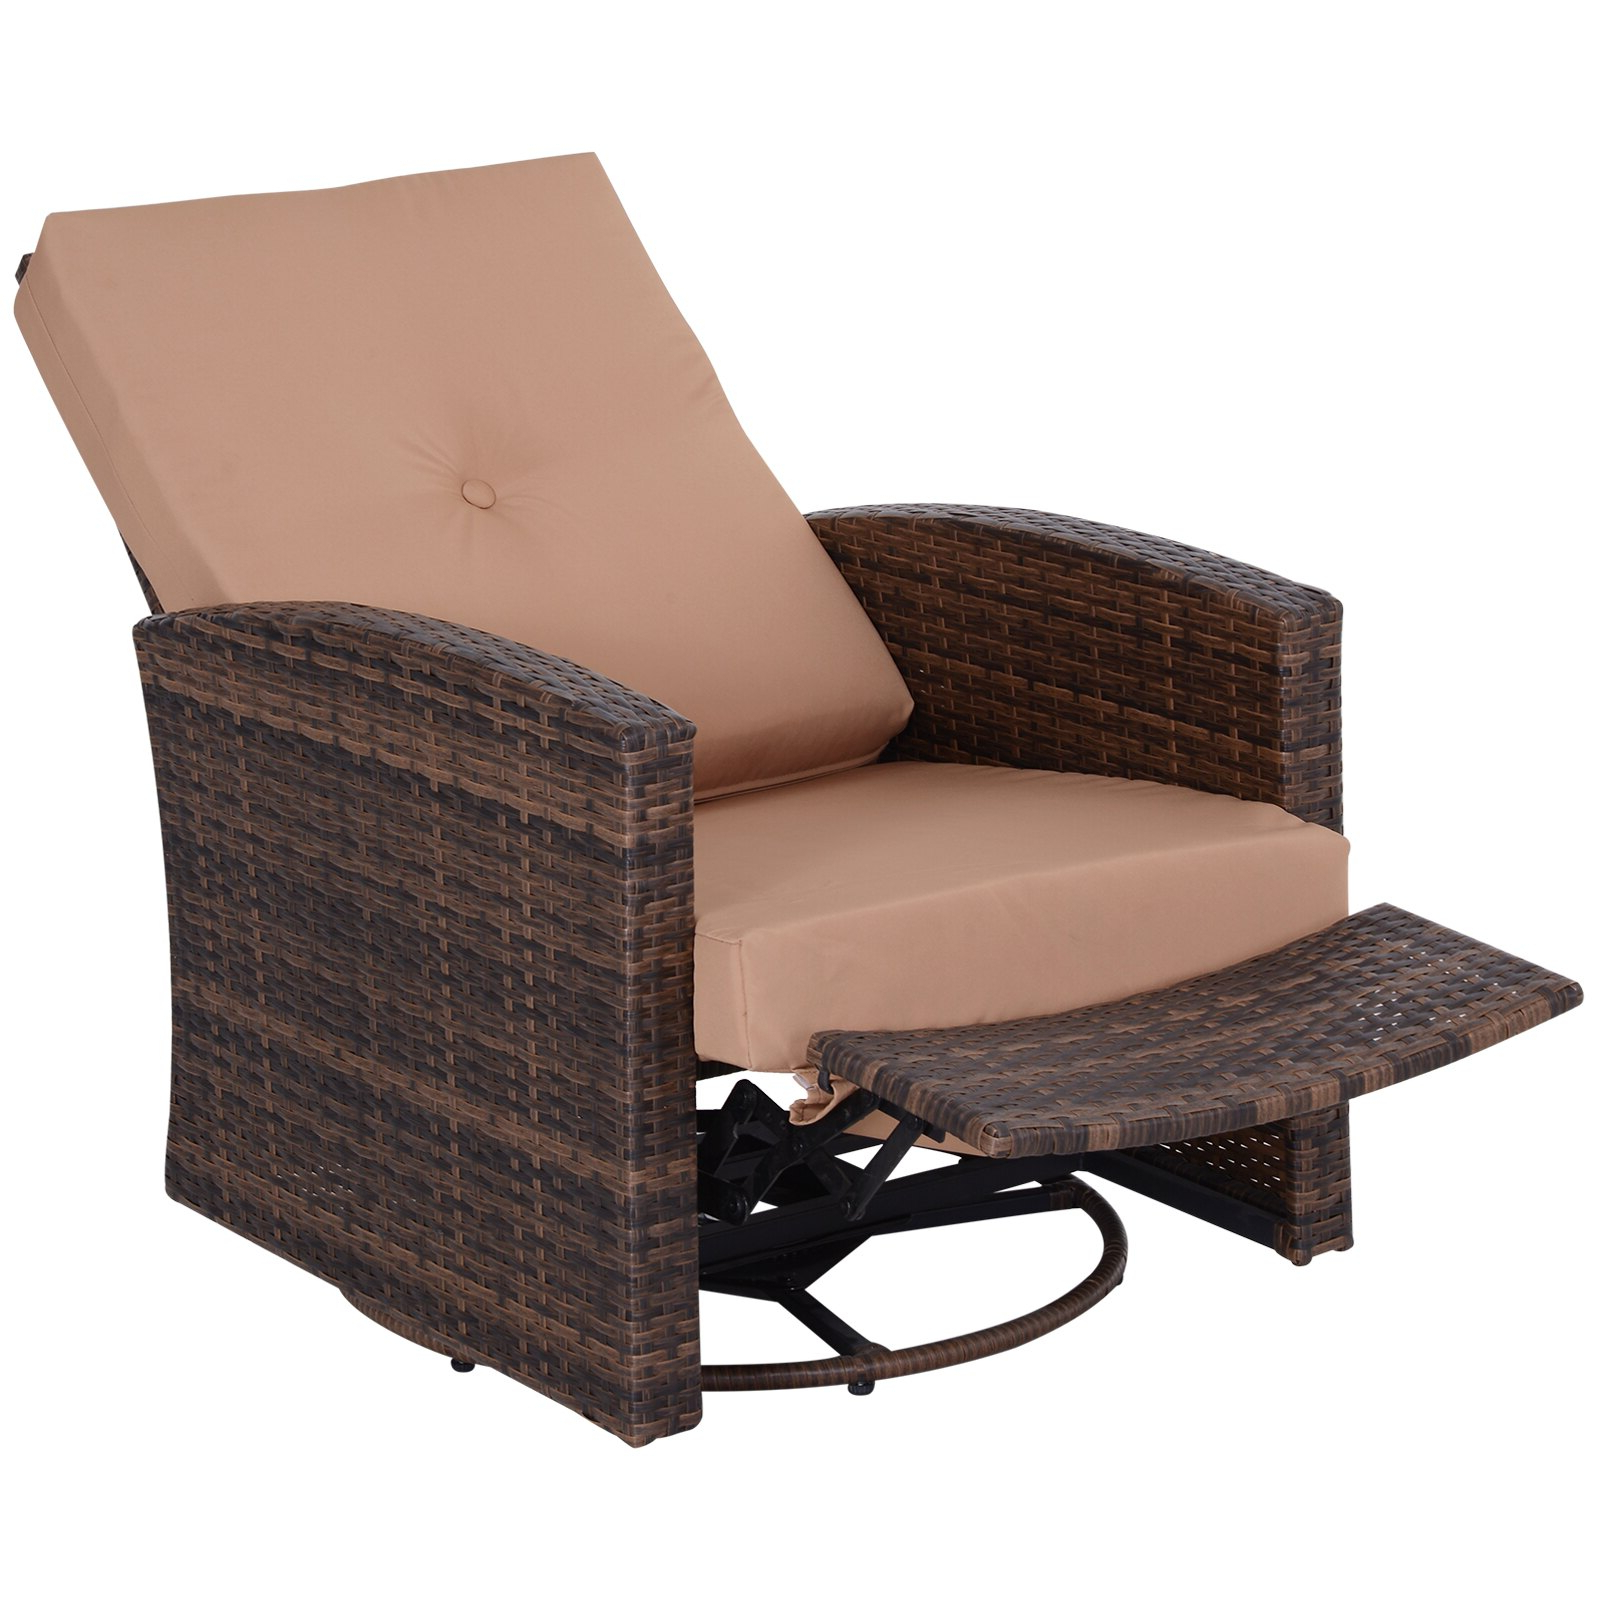 Rakuten Throughout Well Liked Outdoor Adjustable Rattan Wicker Recliner Chairs With Cushion (Gallery 13 of 25)